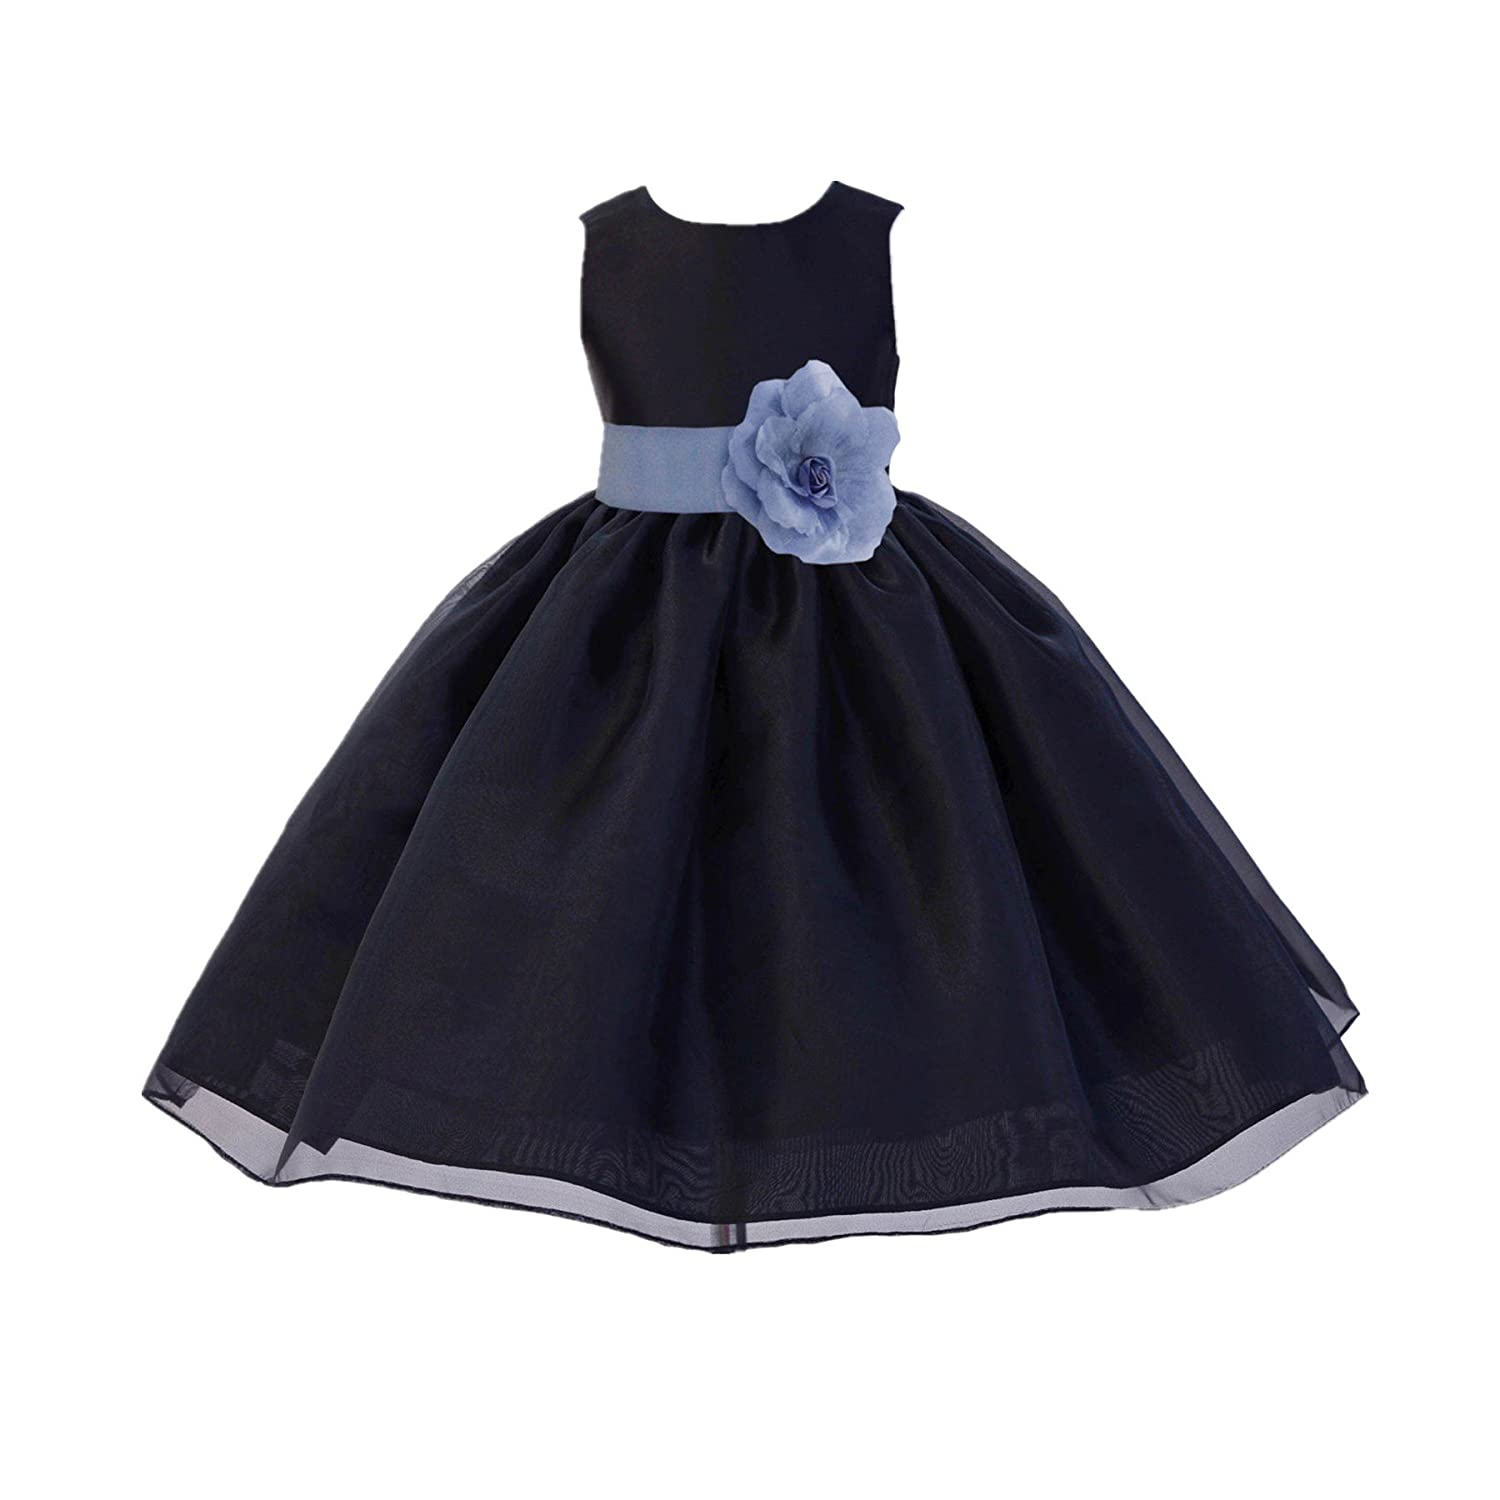 90506b714e7 We used an additional petticoat that is not included with the dress.  Material  Satin Poly   Satin Lining   Polyester Tulle